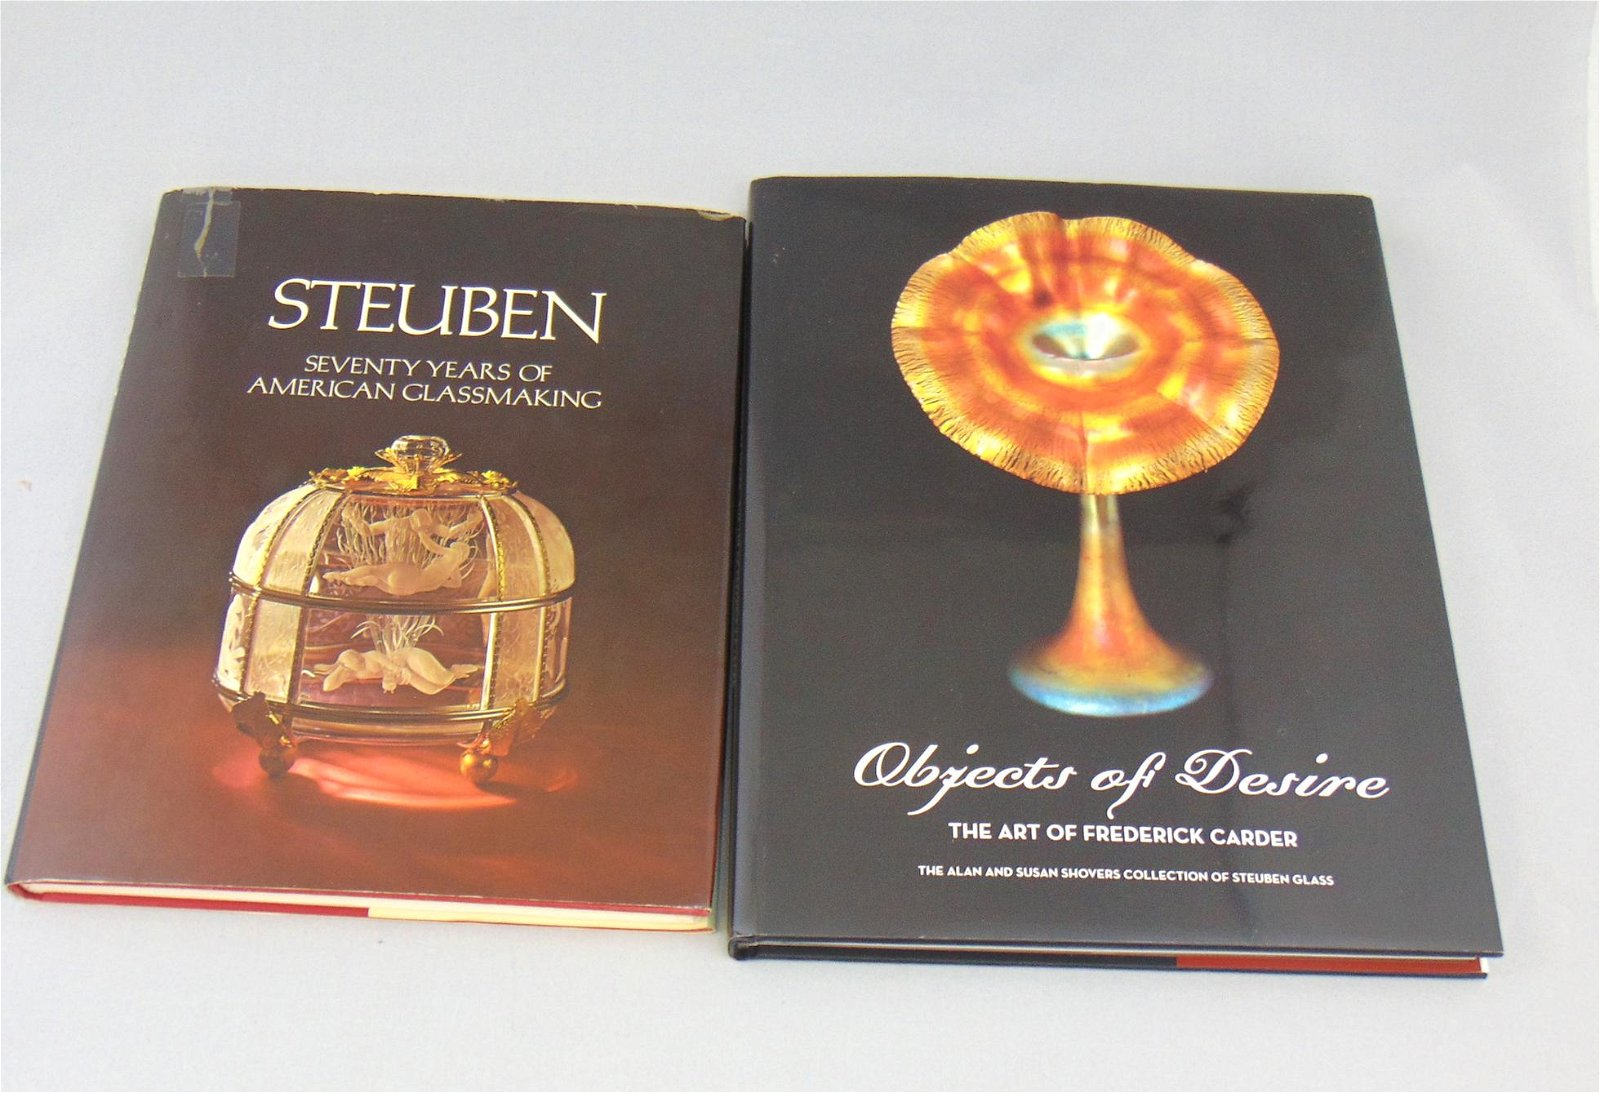 Four books and booklets on Steuben